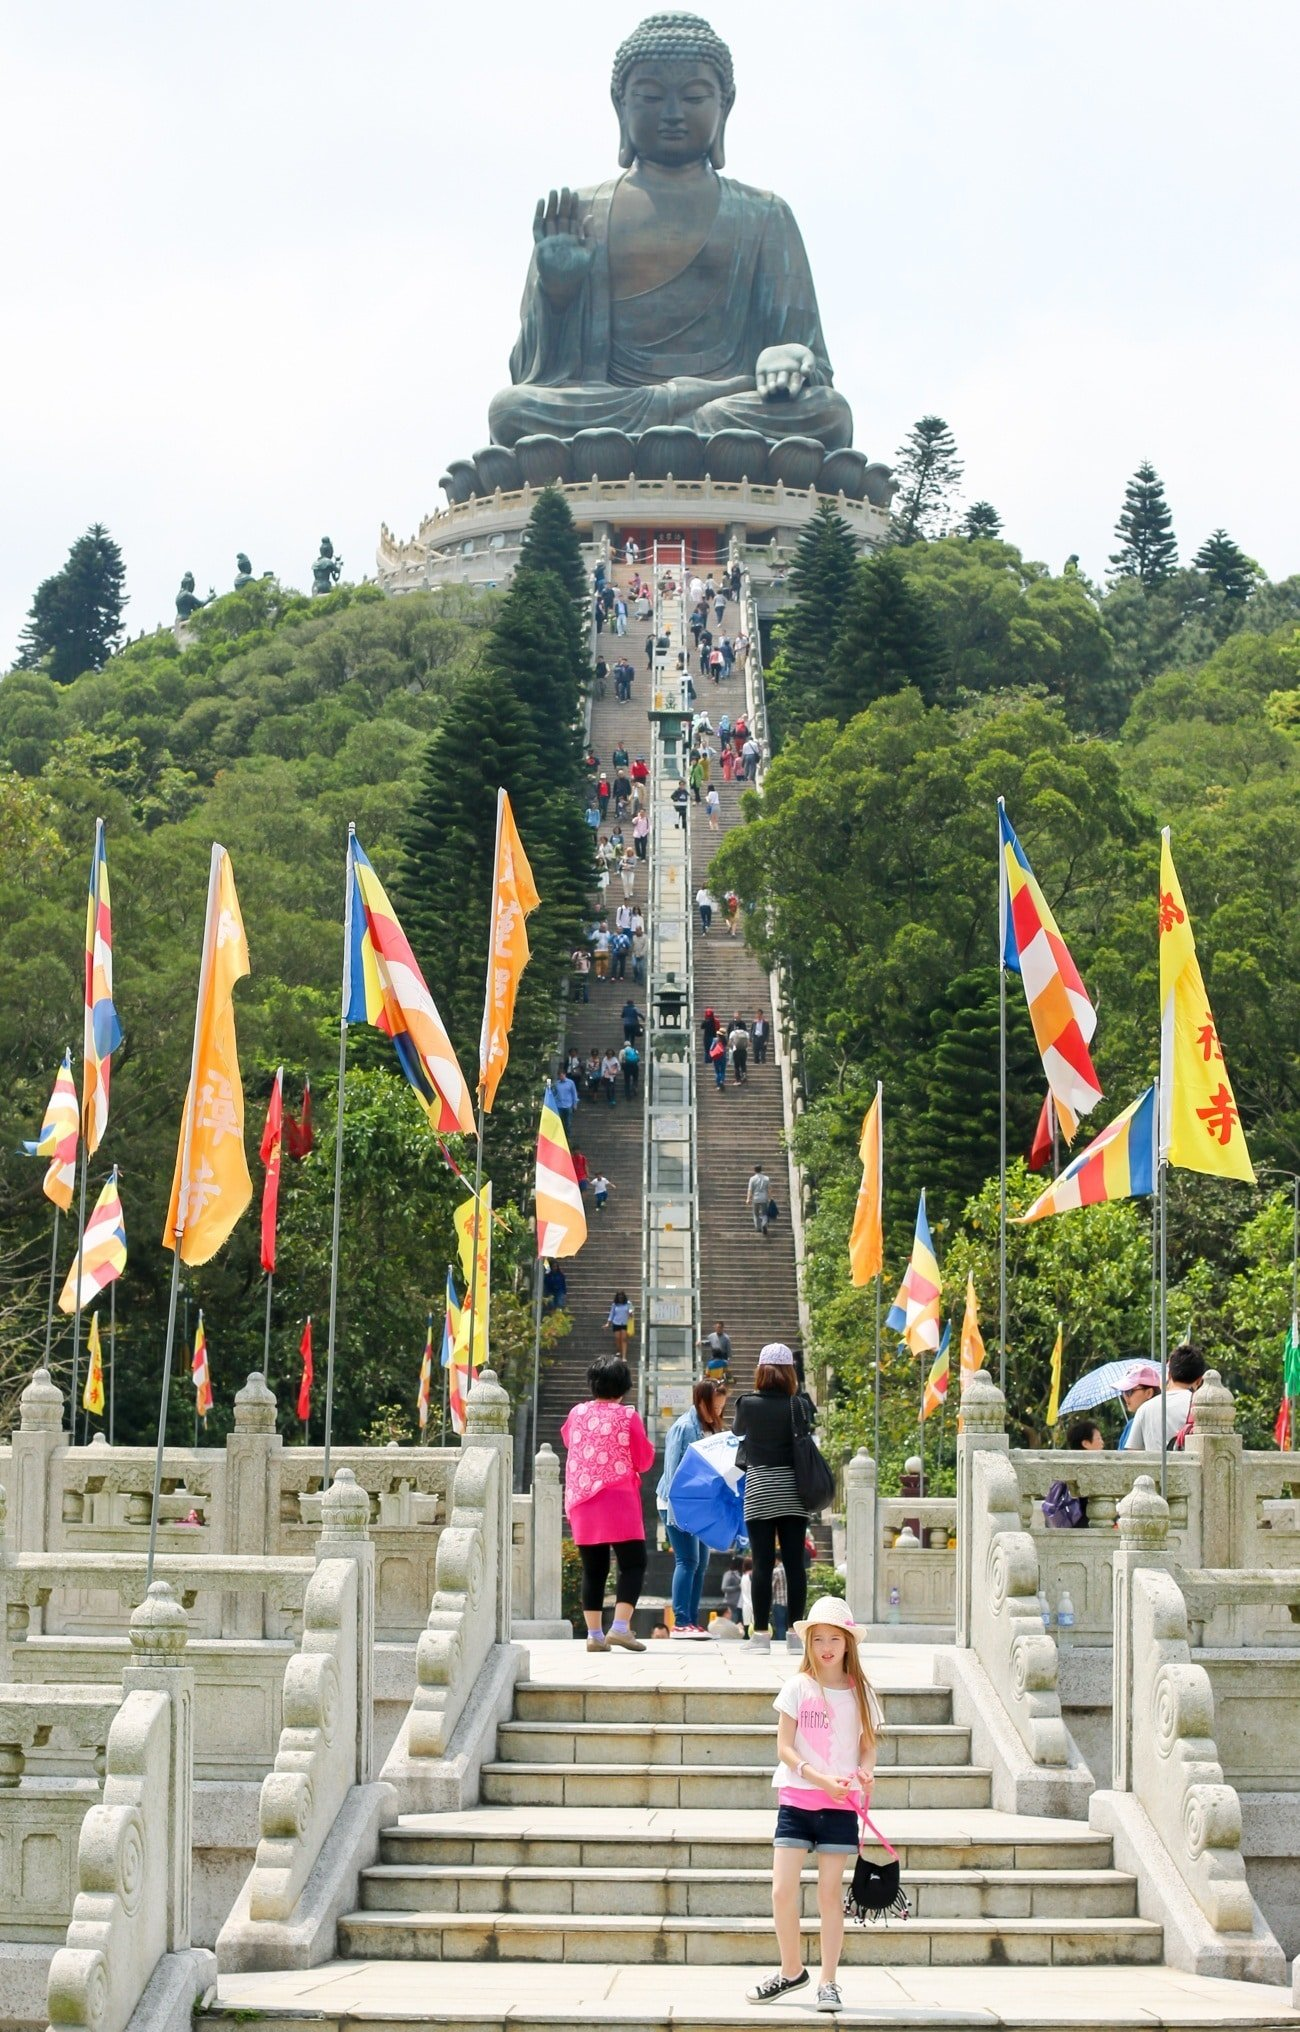 There are 268 steps up to the Big Buddha in Hong Kong